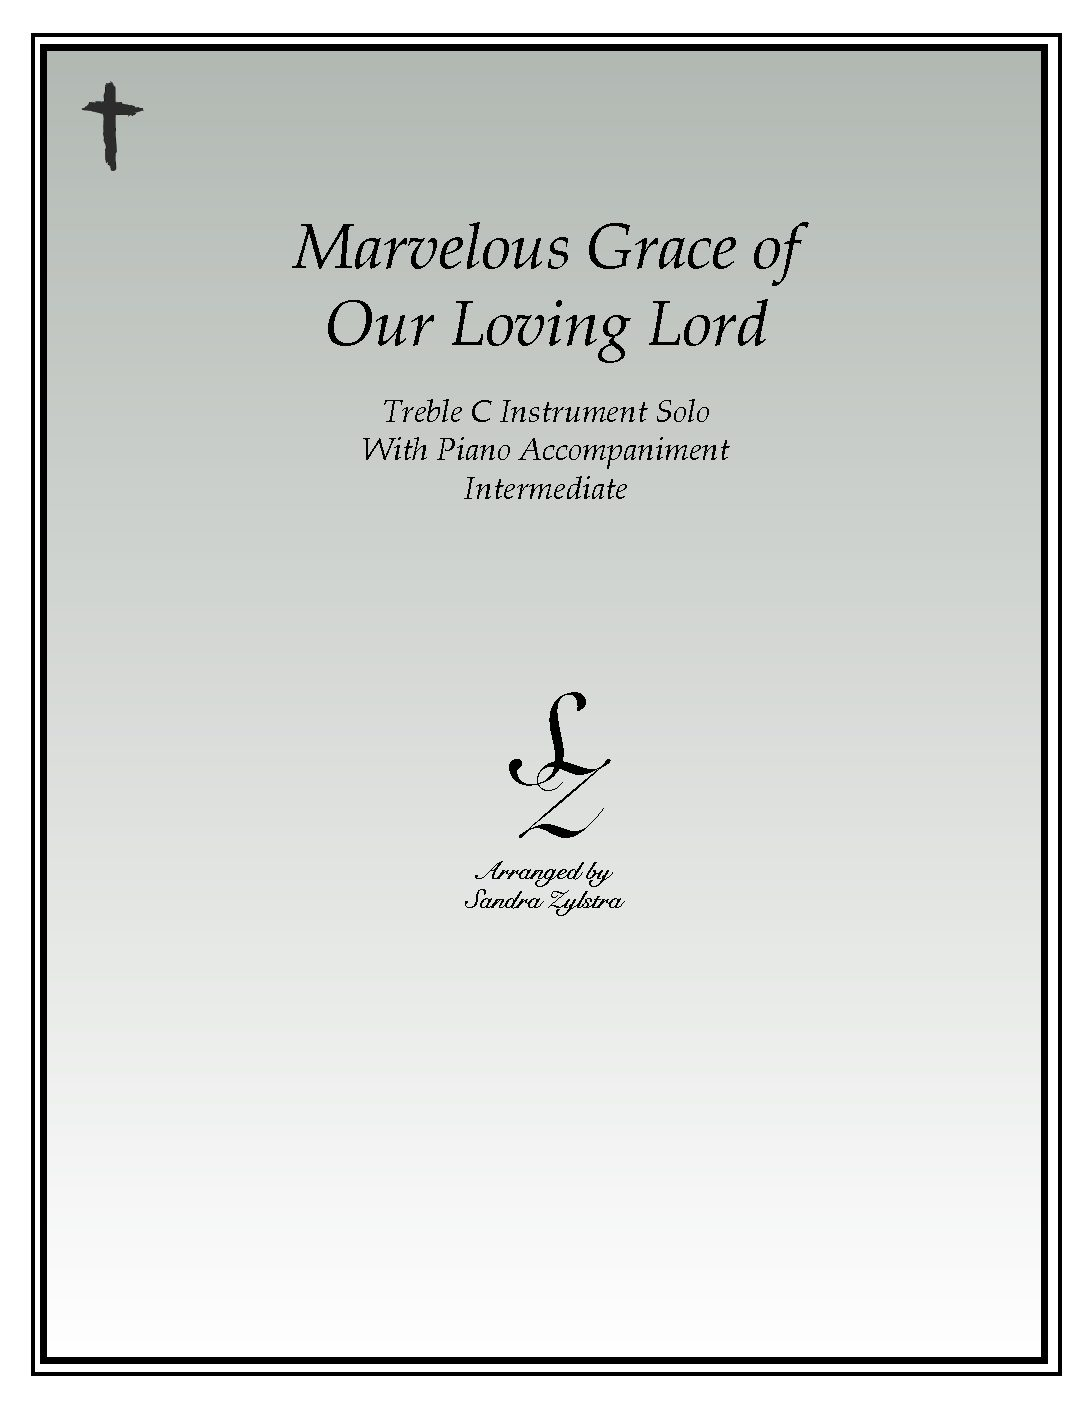 IS 43 Marvelous Grace of Our Loving Lord 04 Treble C pdf